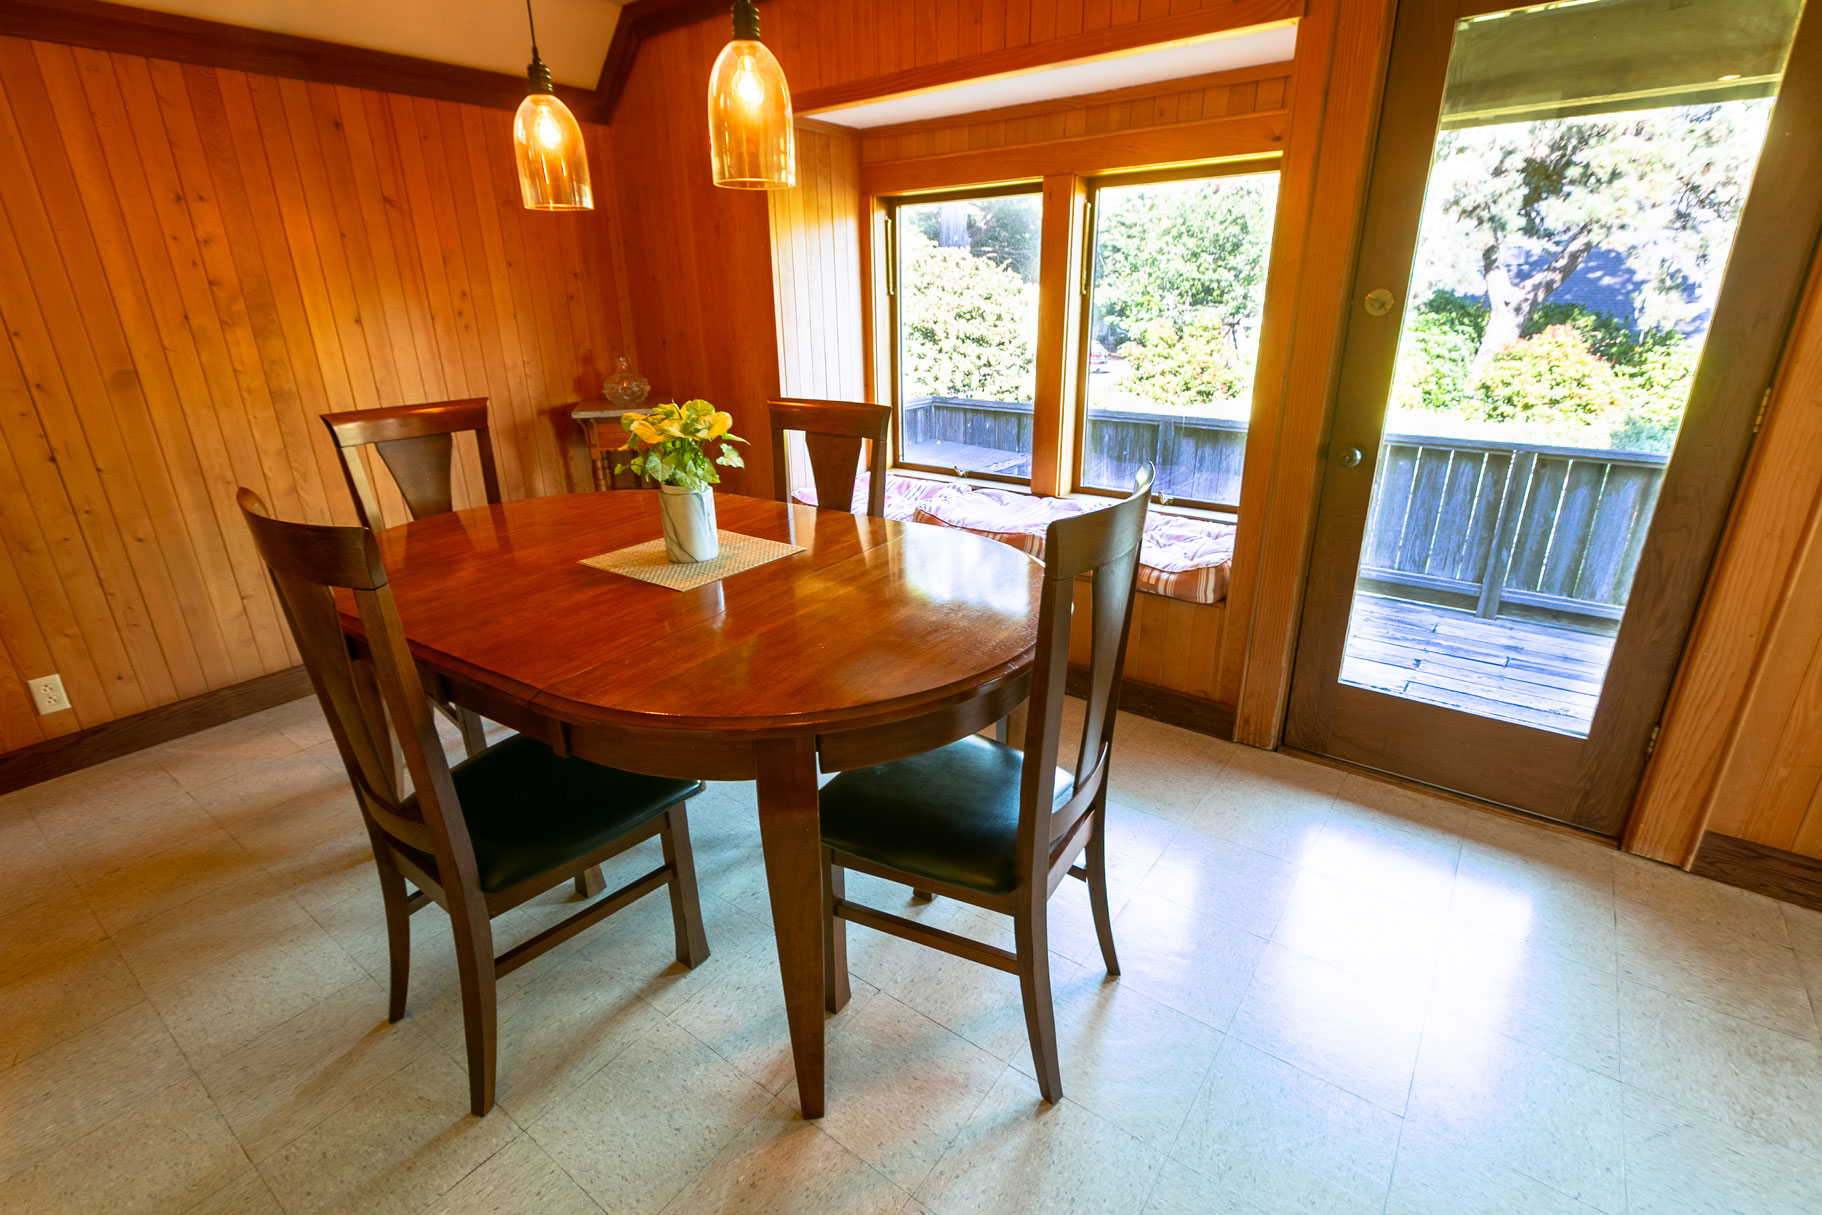 dining room at the Barn Loft, Glendeven Inn and Lodge